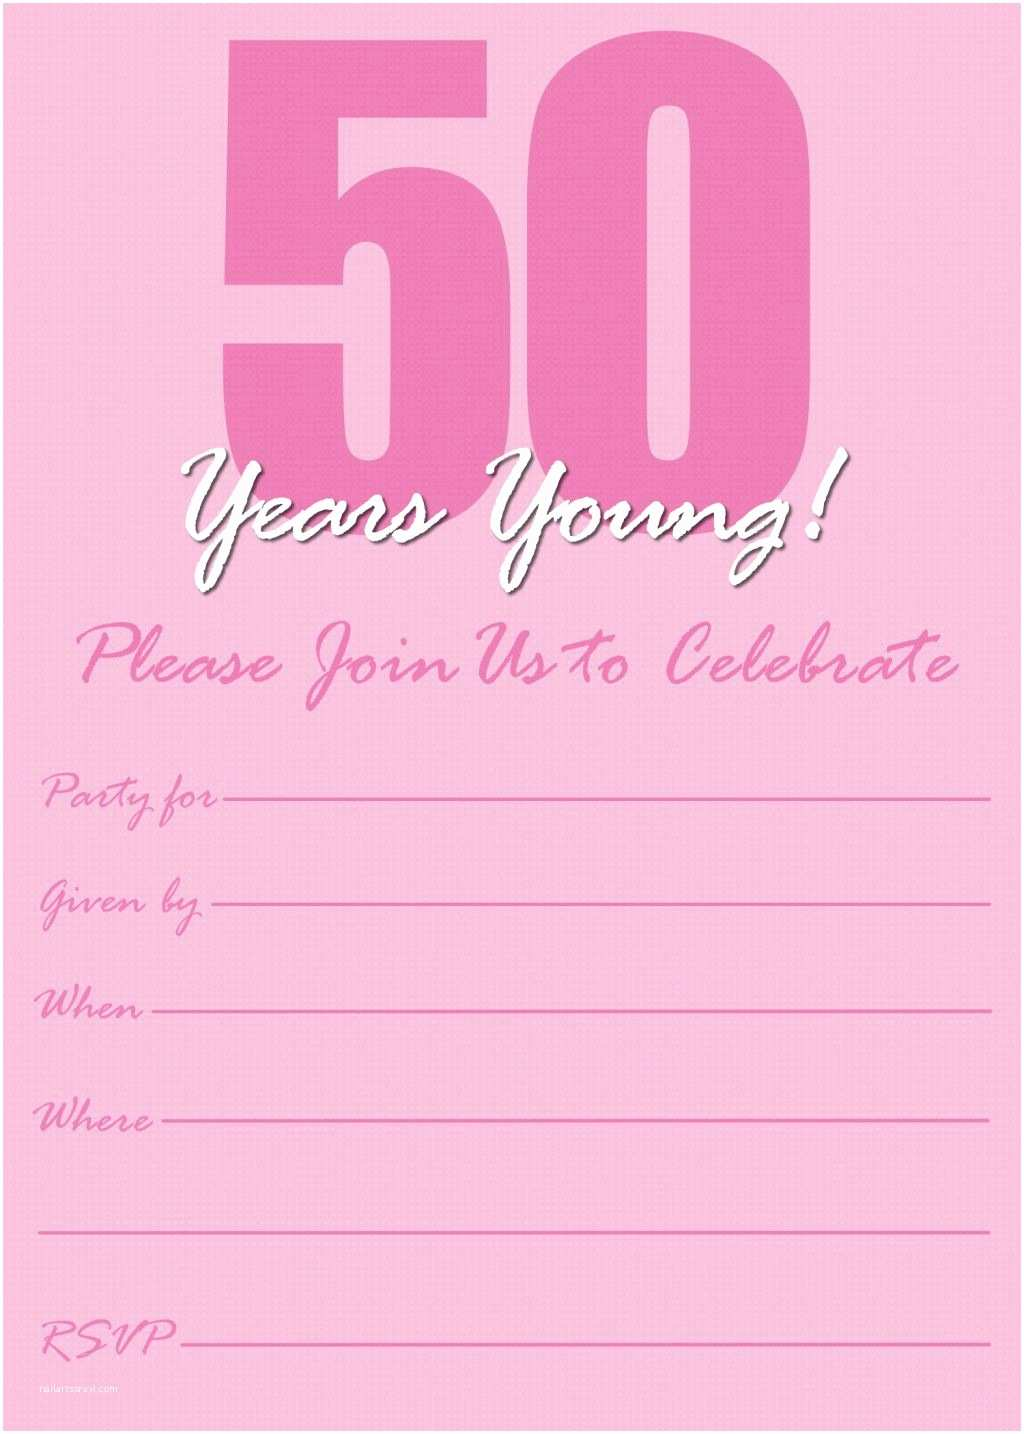 Birthday Party Invitation Template Templates for 50th Birthday Invitations 80th Birthday